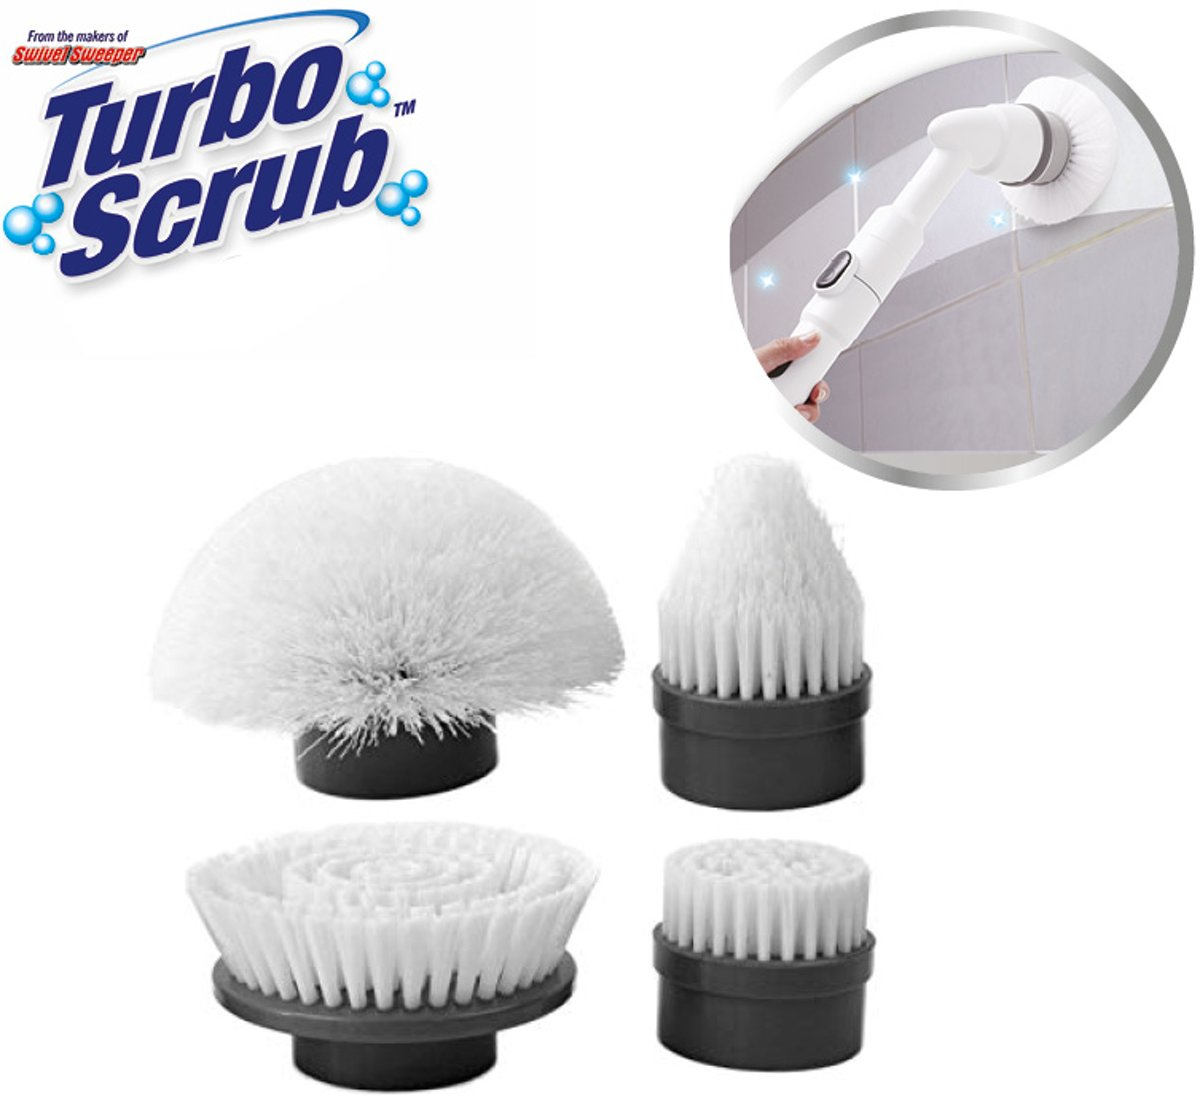 Turbo Scrub - Recharge Kit - 4 Extra Borstels - Best of TV kopen